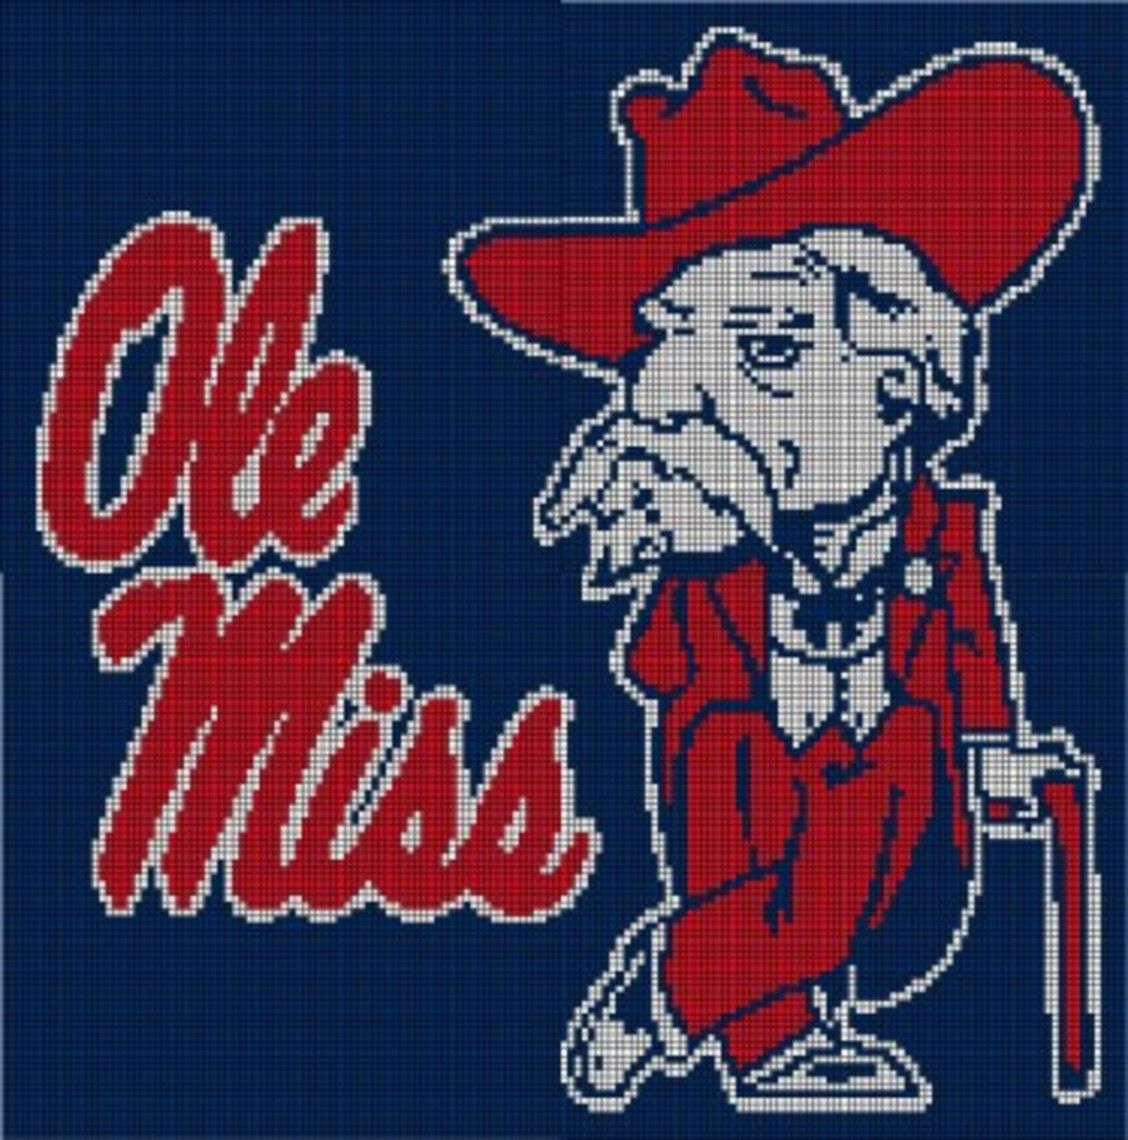 Ole miss rebels crochet pattern afghan graph 35 crochet ole miss rebels crochet pattern afghan graph 35 bankloansurffo Image collections